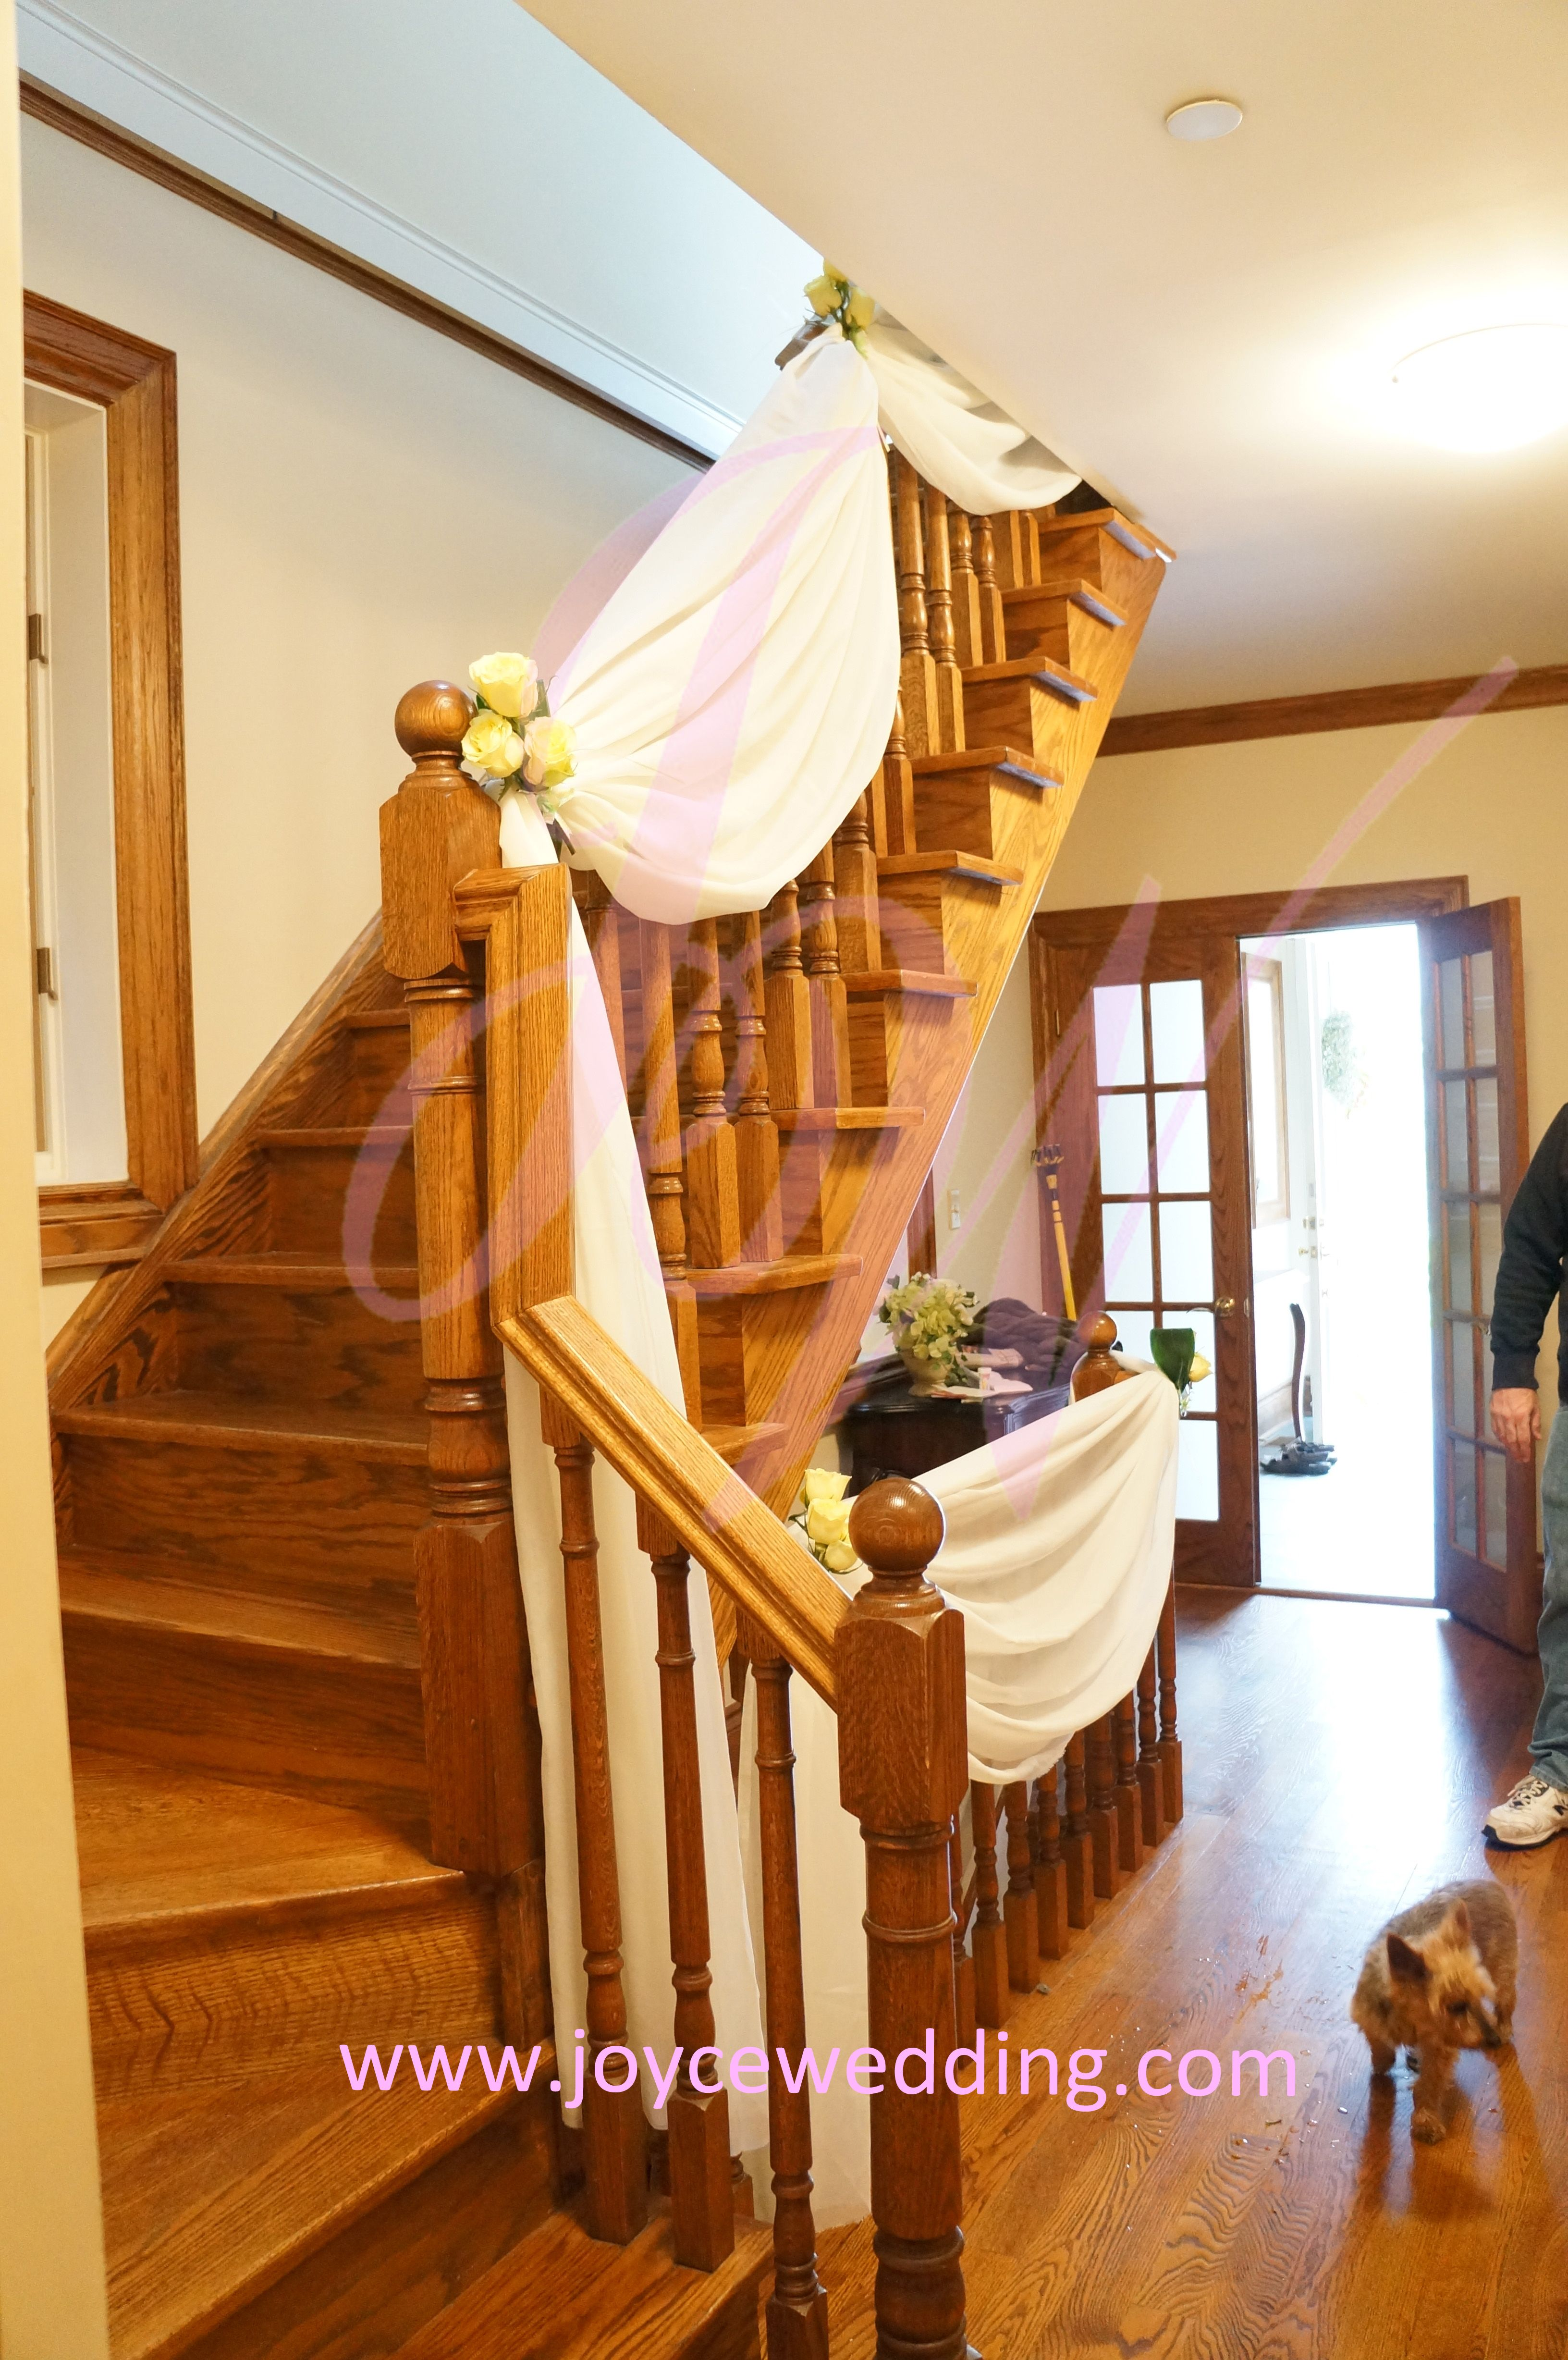 Wedding decorations home  Stair Drapery for at Home Wedding Decoration  Wedding